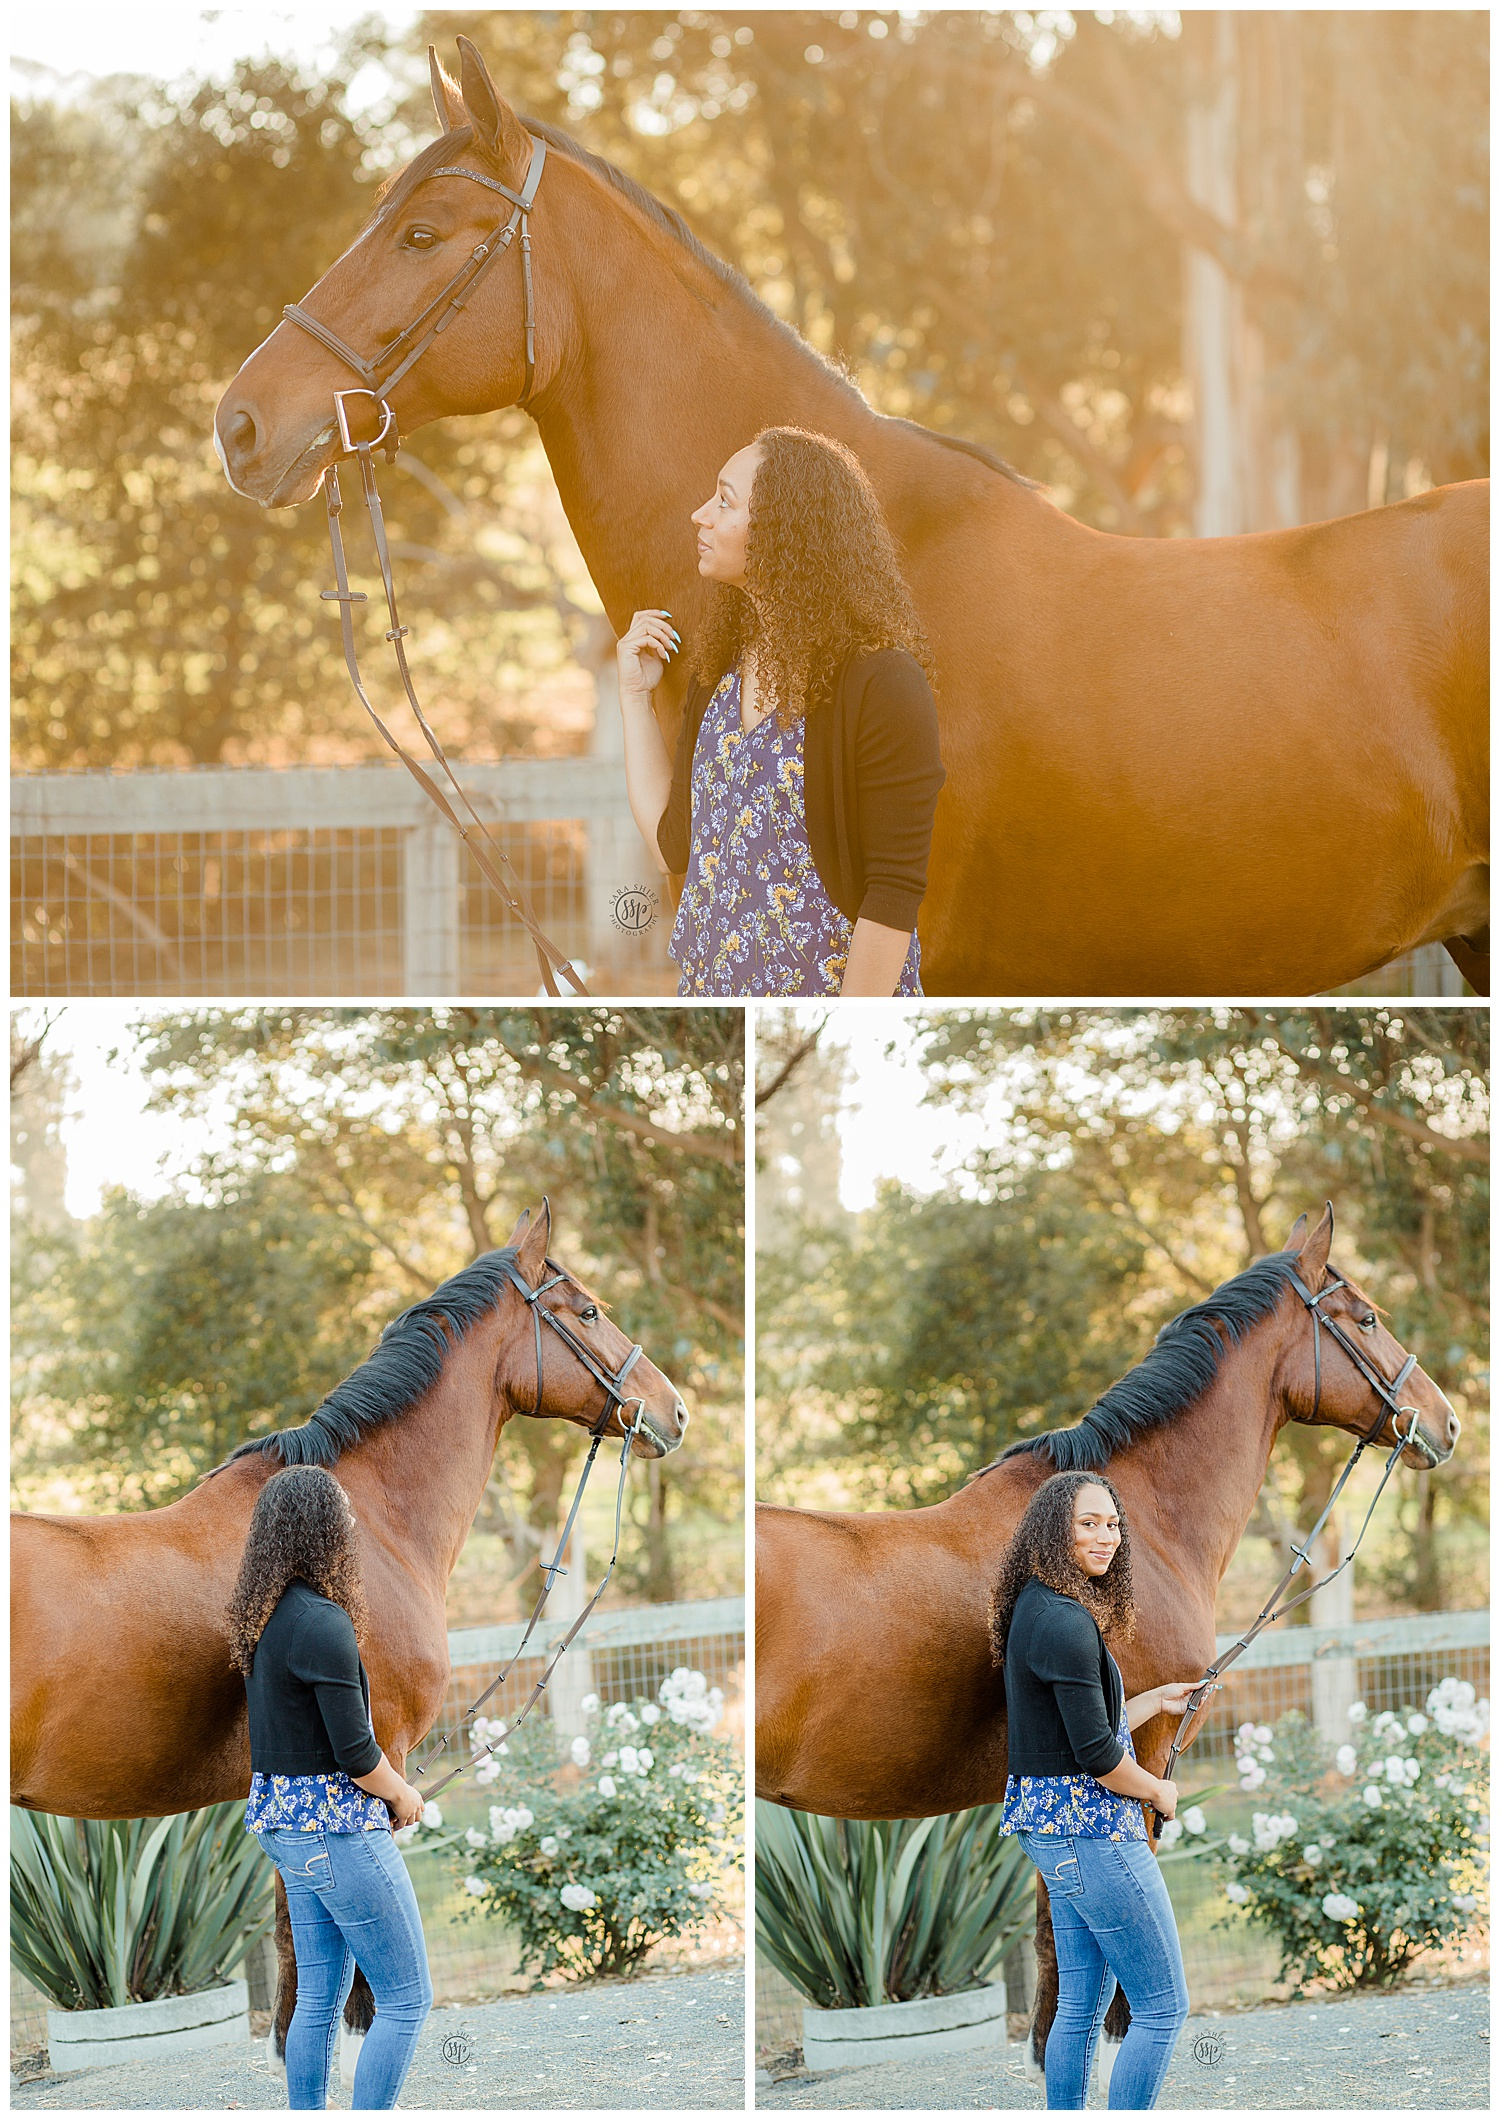 Black Background Horse Rider Equine Photographer Southern California Sara Shier Photography SoCal Equestrian Cowgirl_0236.jpg